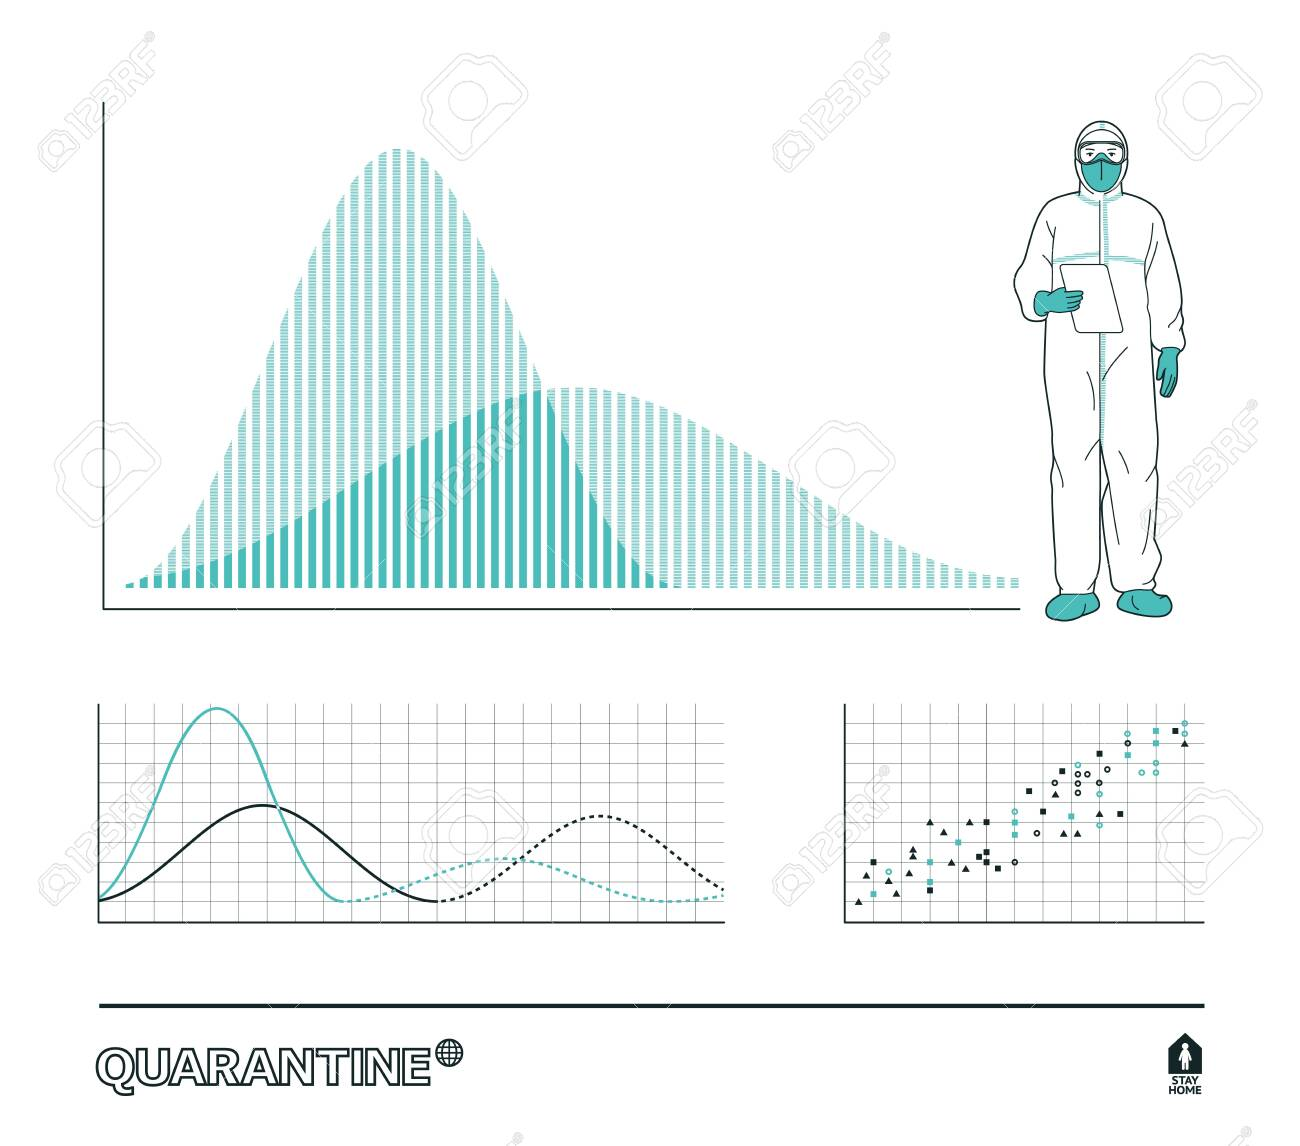 Man wearing isolation suit. Sars-CoV-2 outbreak fatality rate. Dangerous covid-19. Growing number of cases and high death tool. Mortgage rates data illustration set. - 145255670